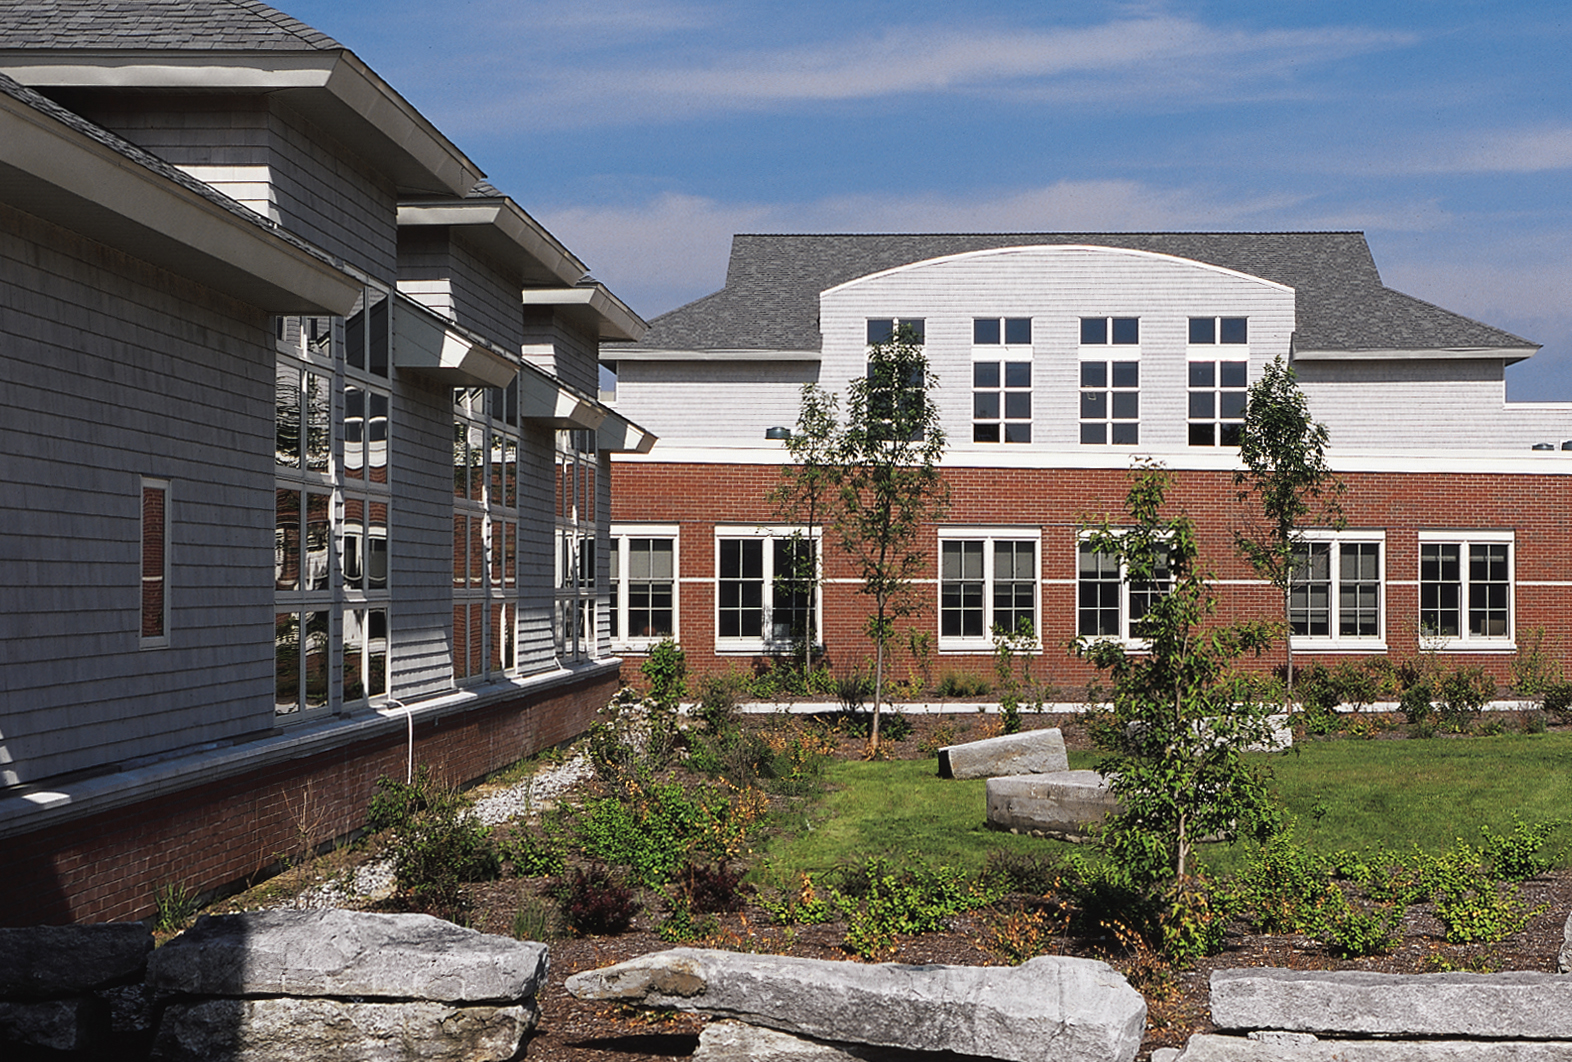 The stone courtyard with Whittier Middle School on the left and Poland Regional High School straight ahead.